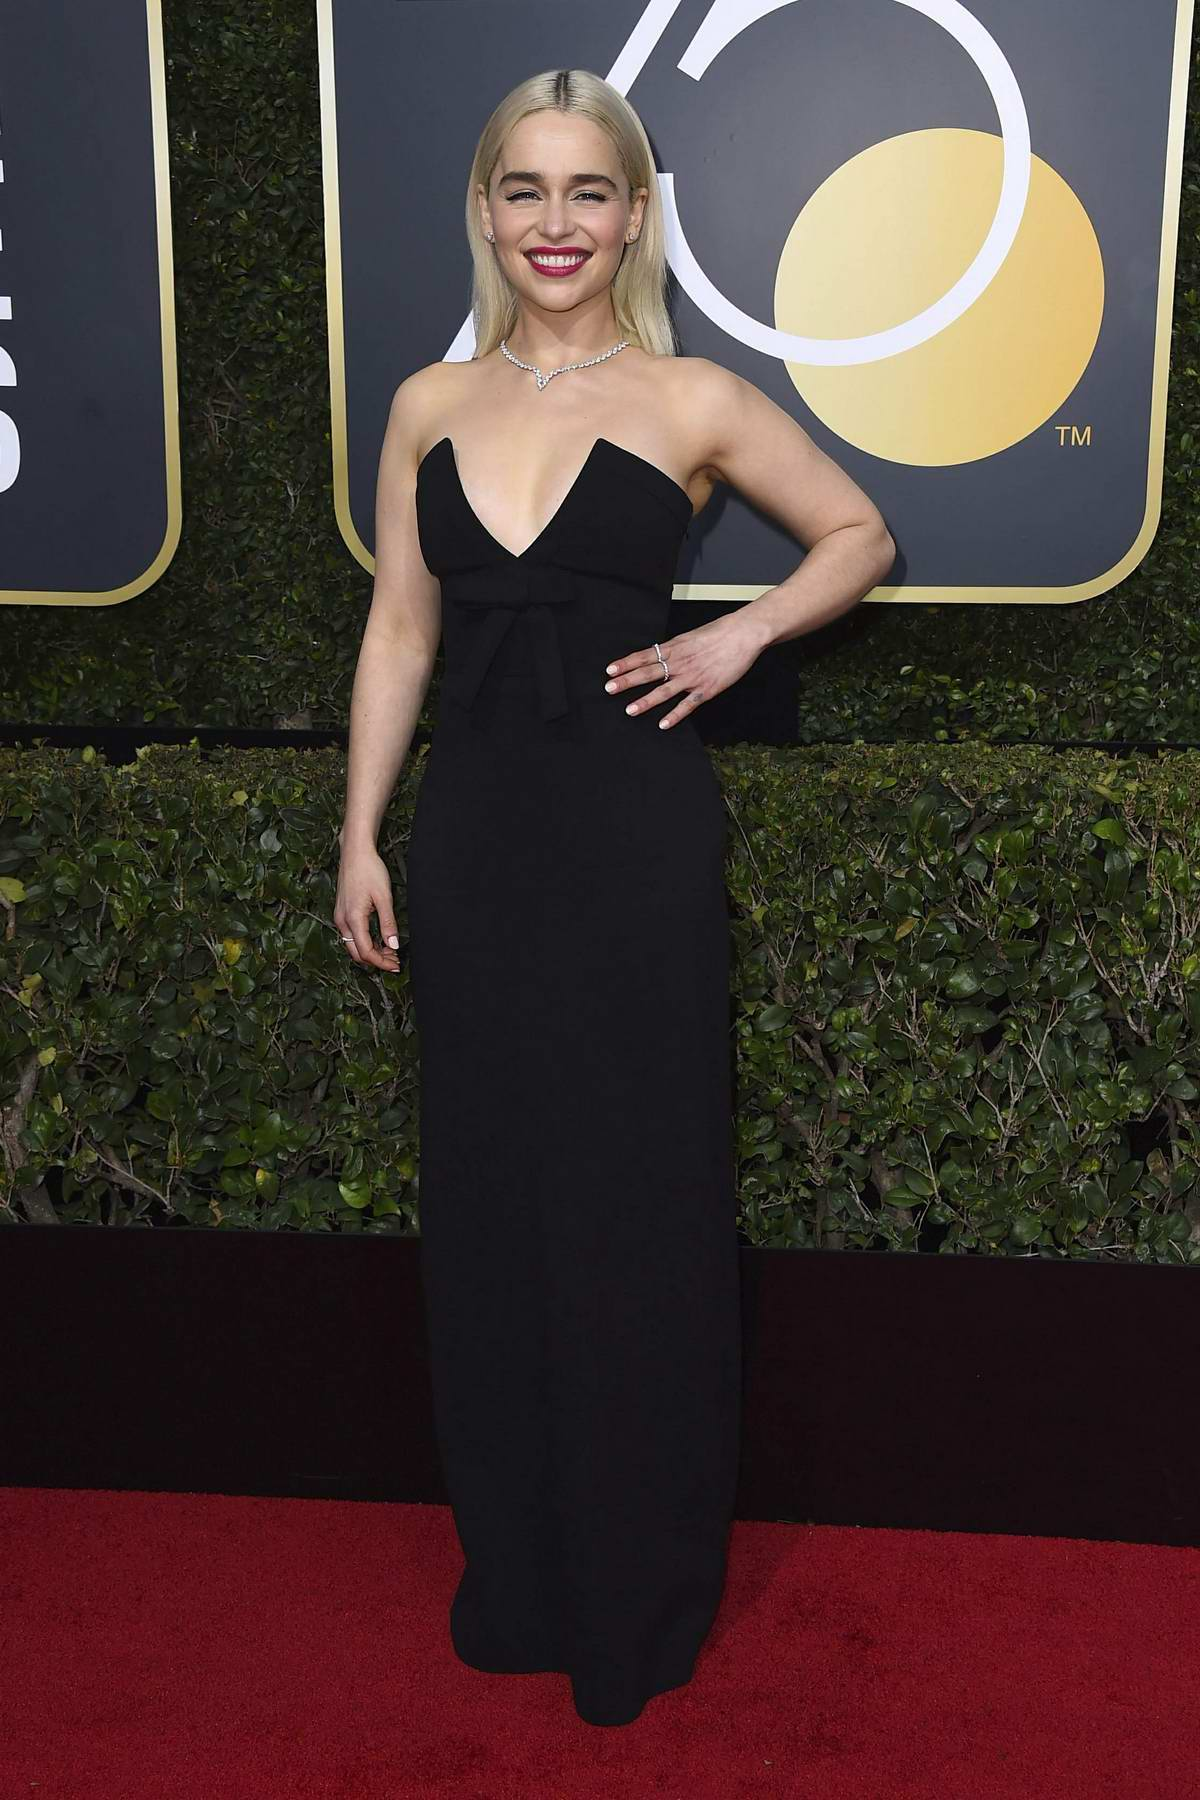 Emilia Clarke attends the 75th Annual Golden Globe Awards in Beverly Hills, Los Angeles